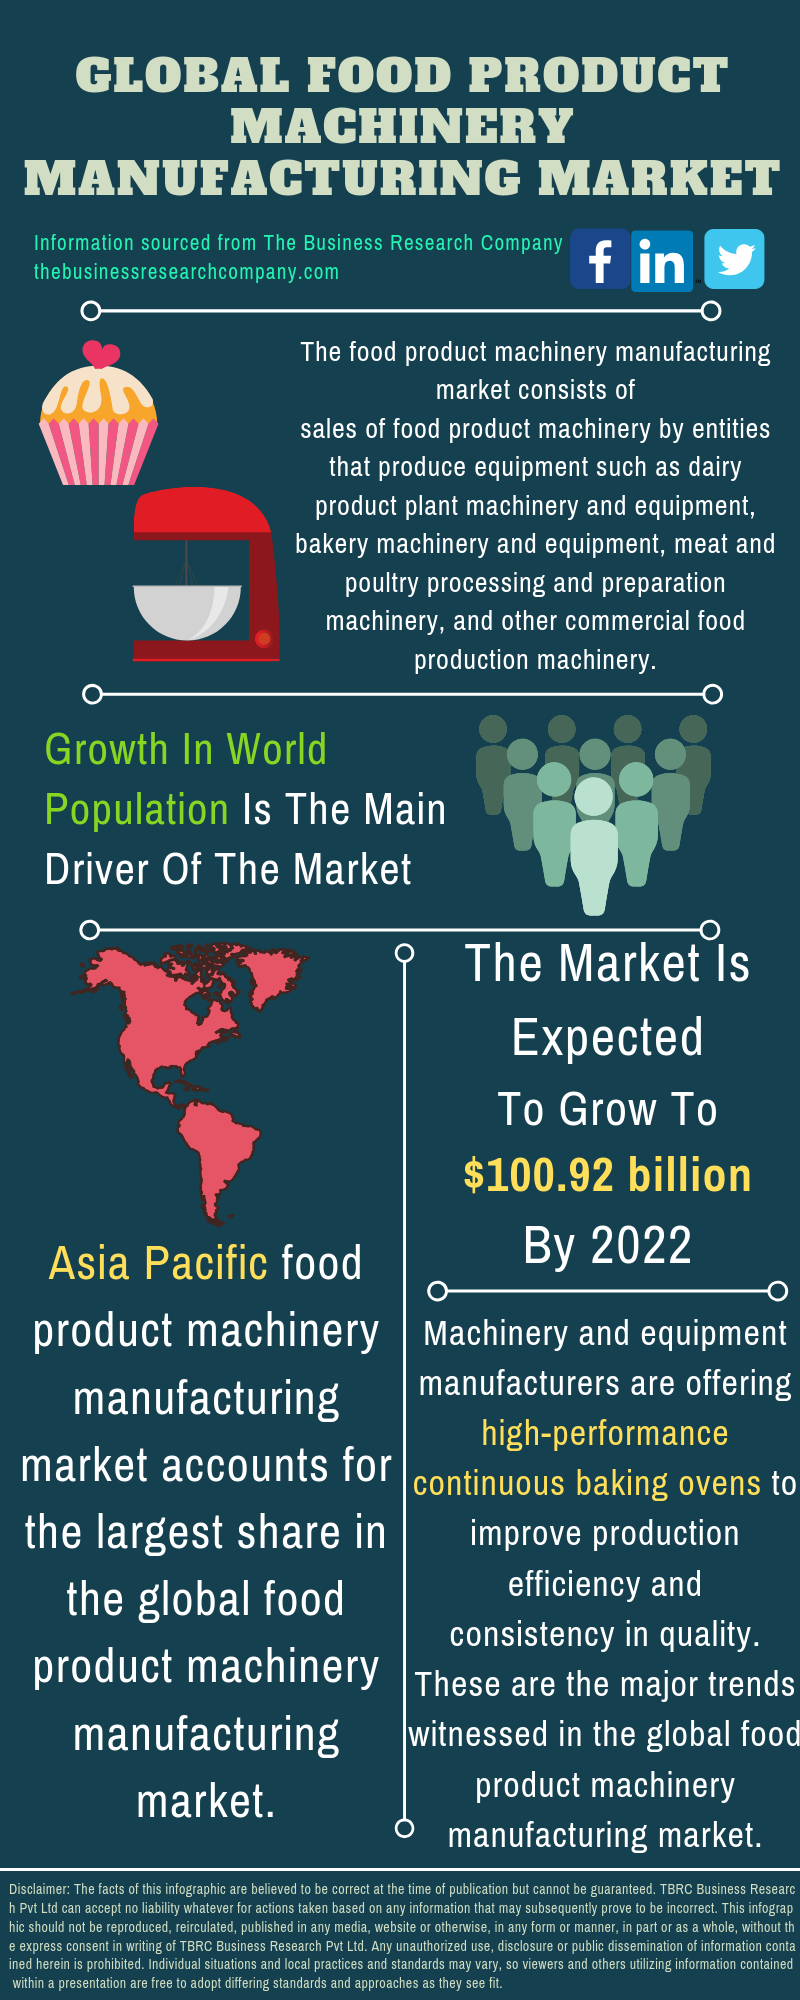 Food Product Machinery Manufacturing Market